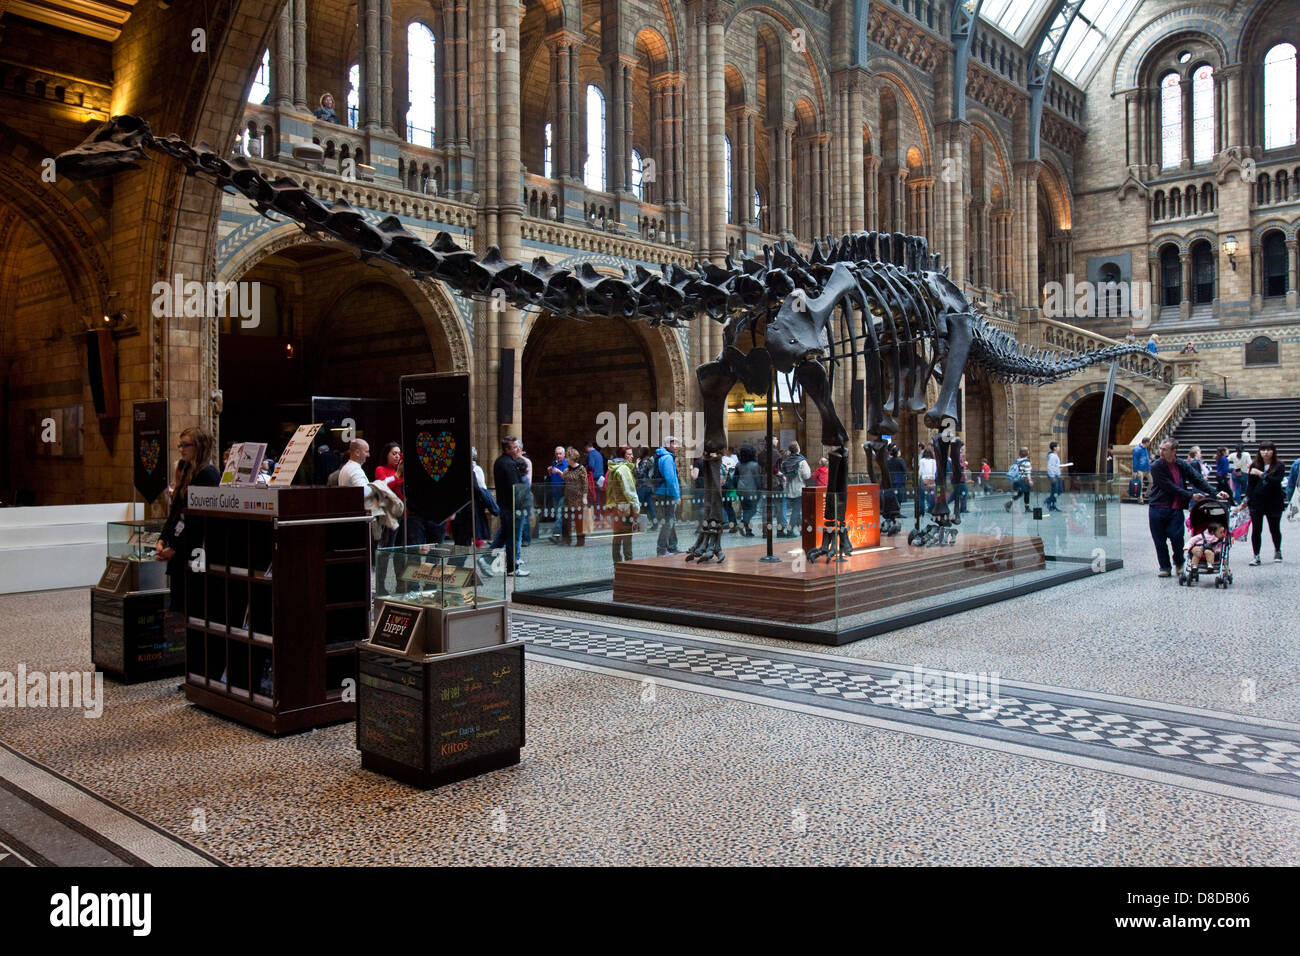 The Natural History Museum, London, England - Stock Image